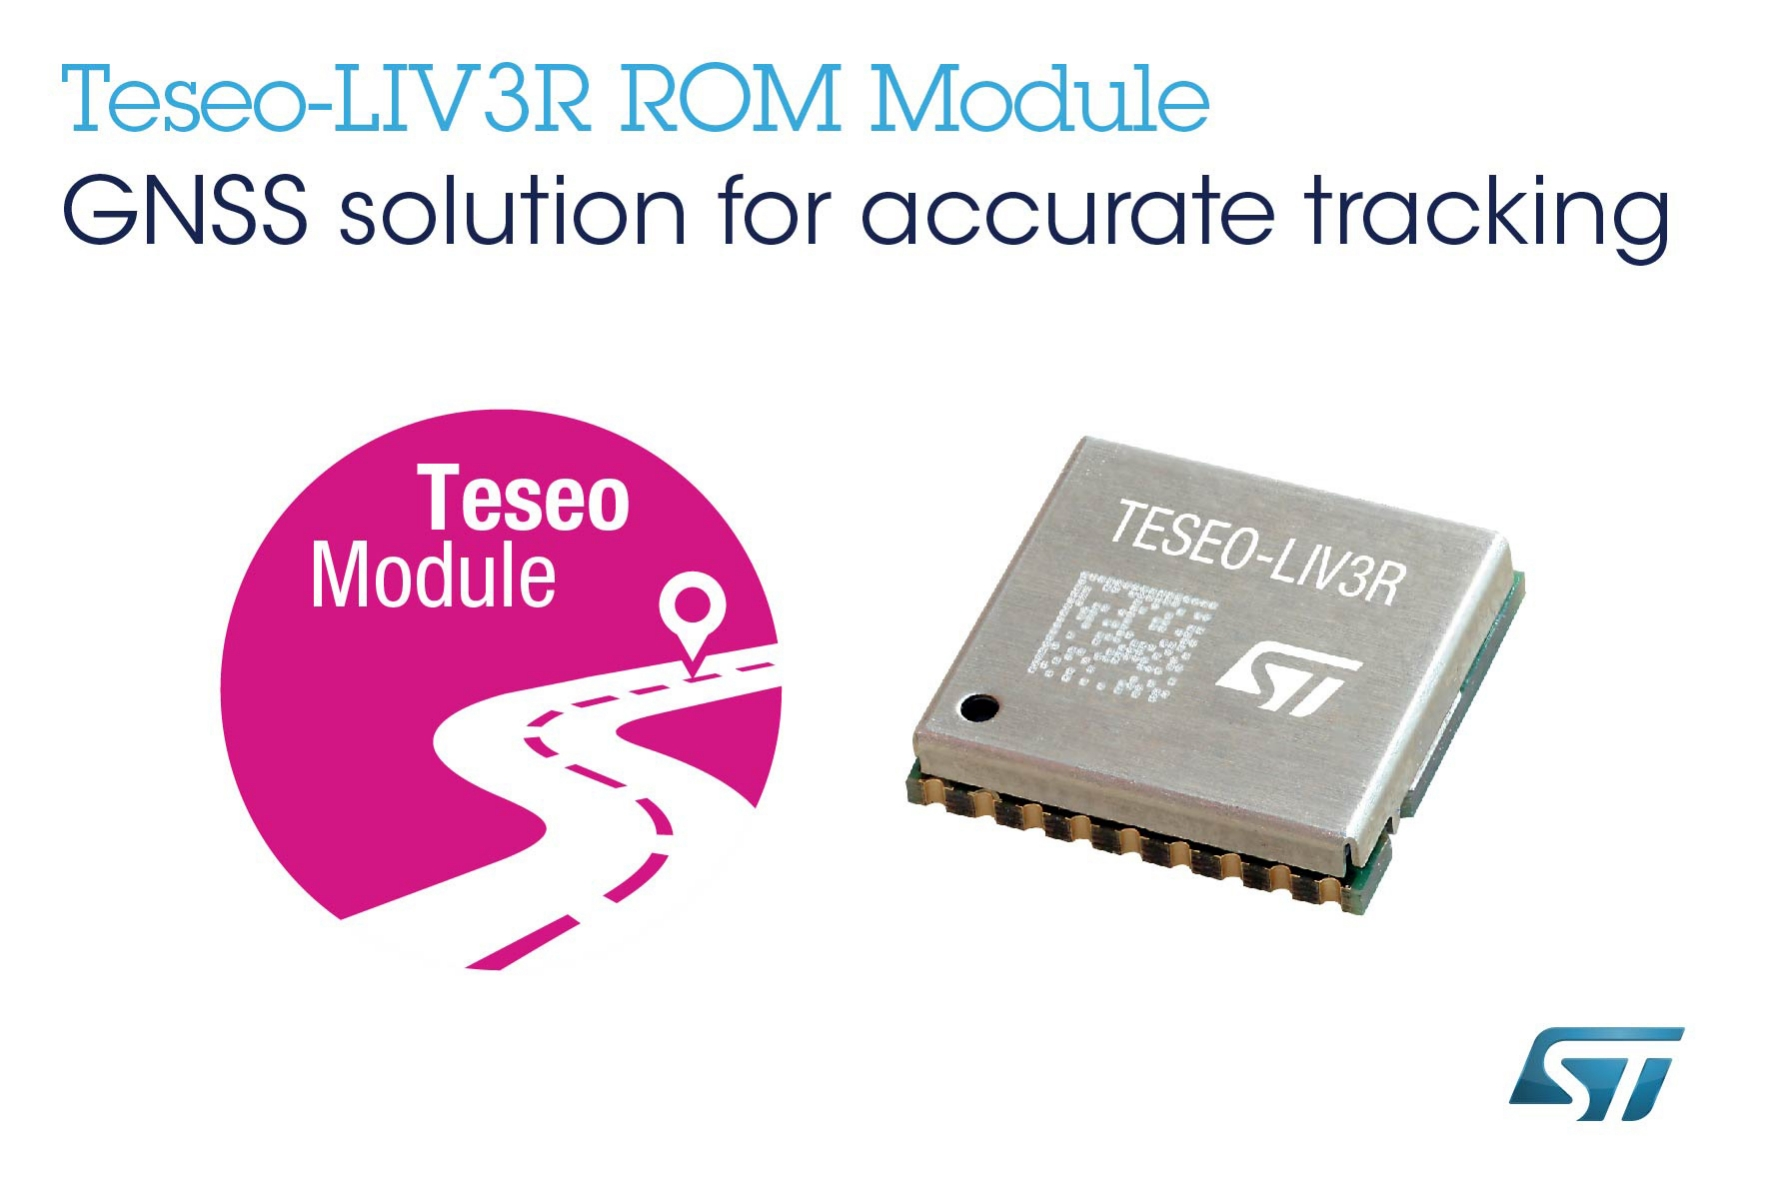 ROM-Based GNSS Module from STMicroelectronics Targets Mass